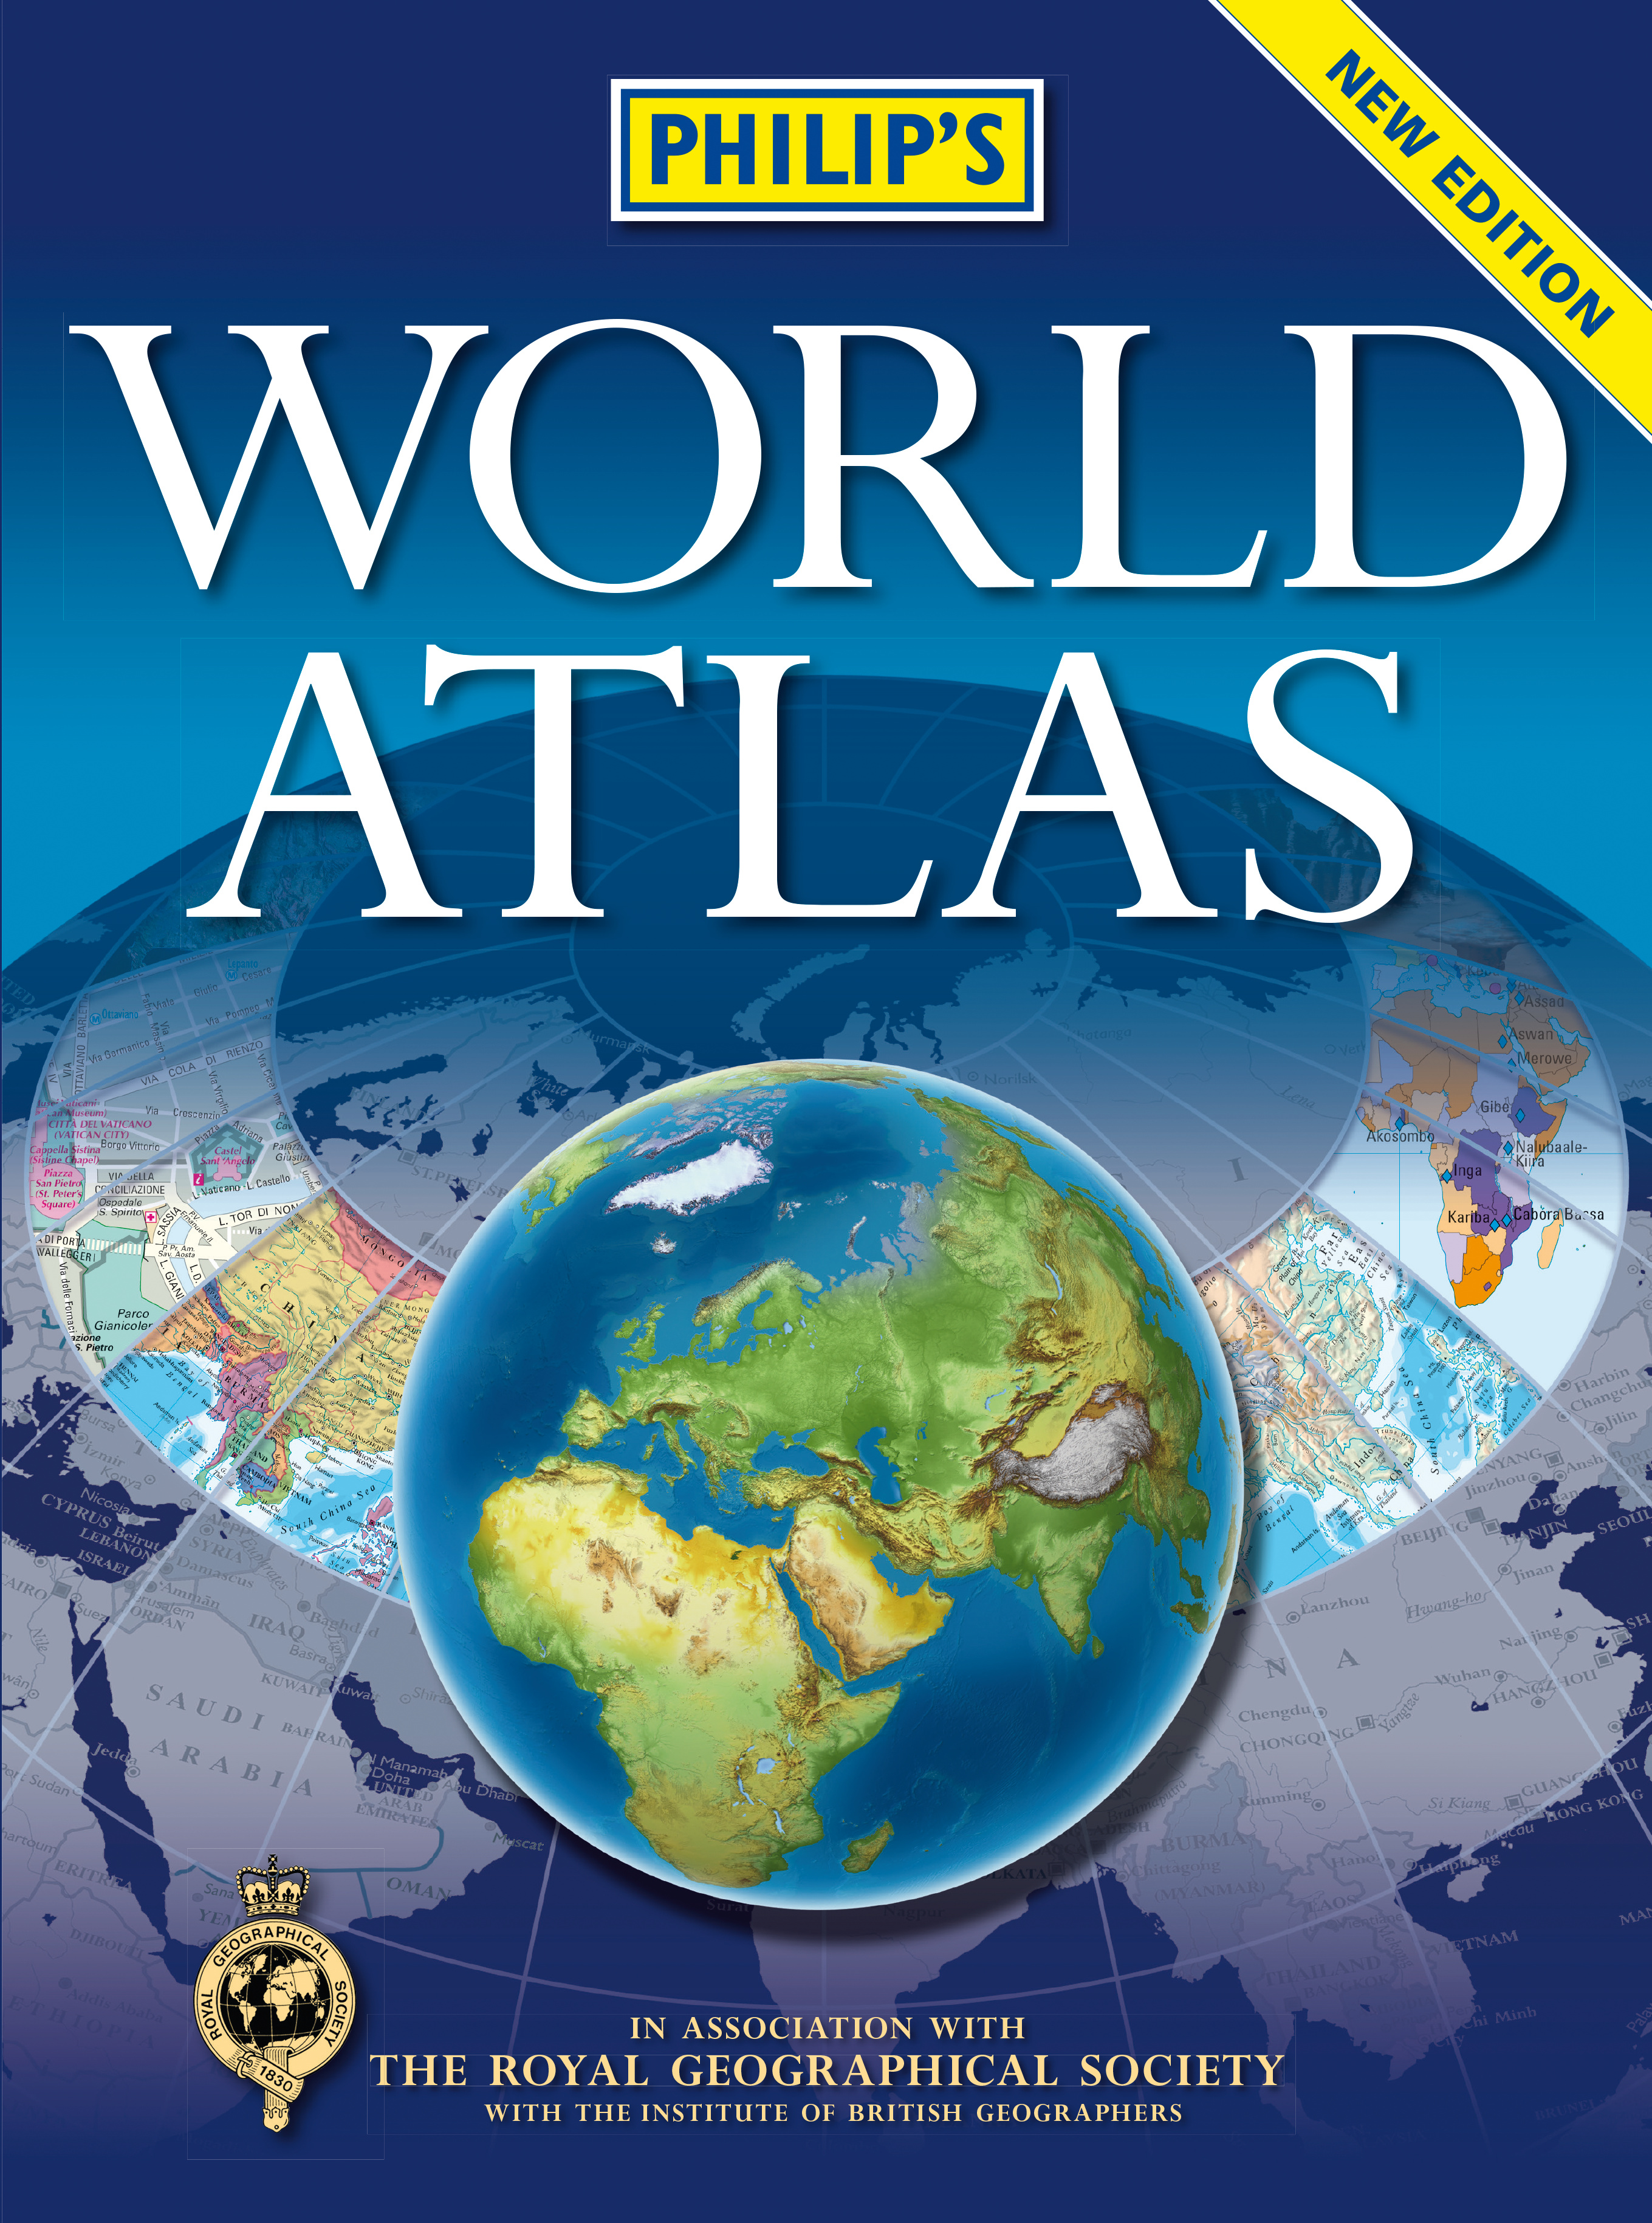 Philips world atlas paperback by philips maps books hachette books philips maps philips world atlas paperback download image download image gumiabroncs Image collections